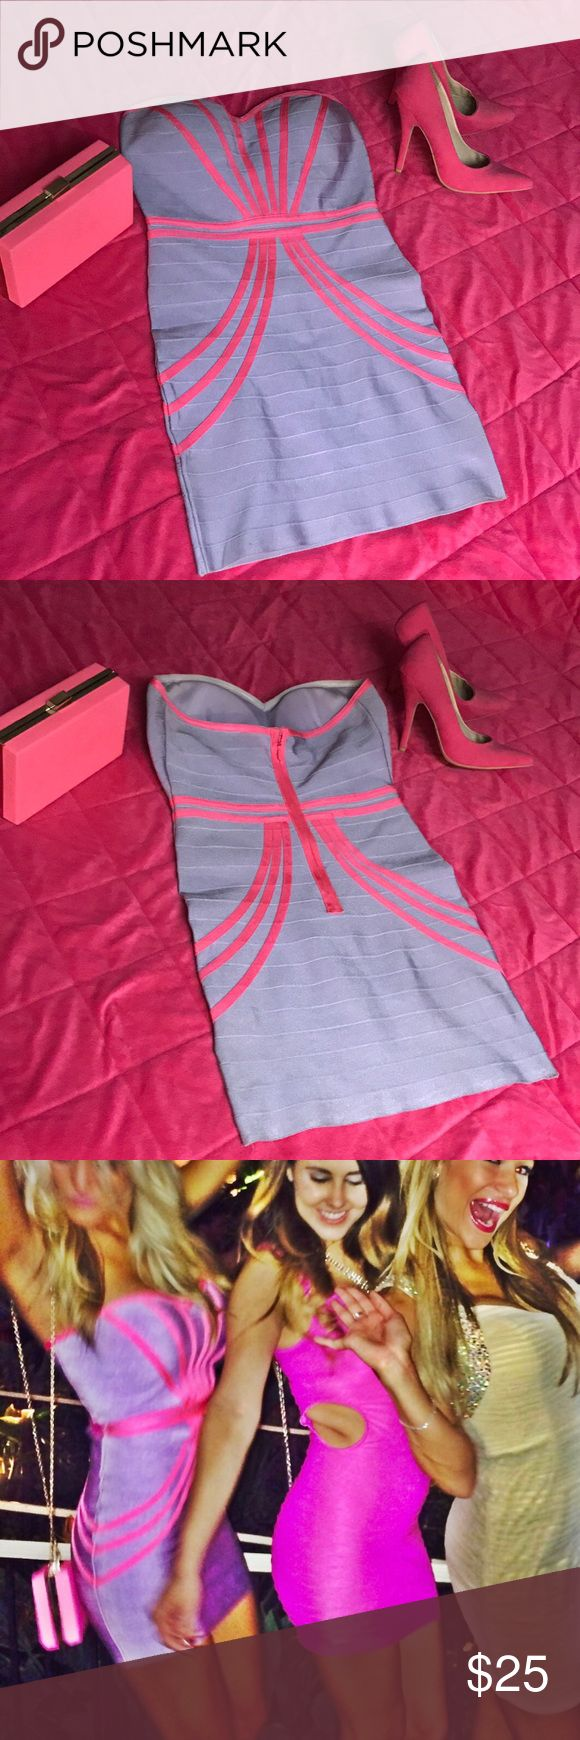 💜💕Pink & Purple bandage dress! 💜💕Pink & Purple bandage dress! Worn once! Dresses Mini